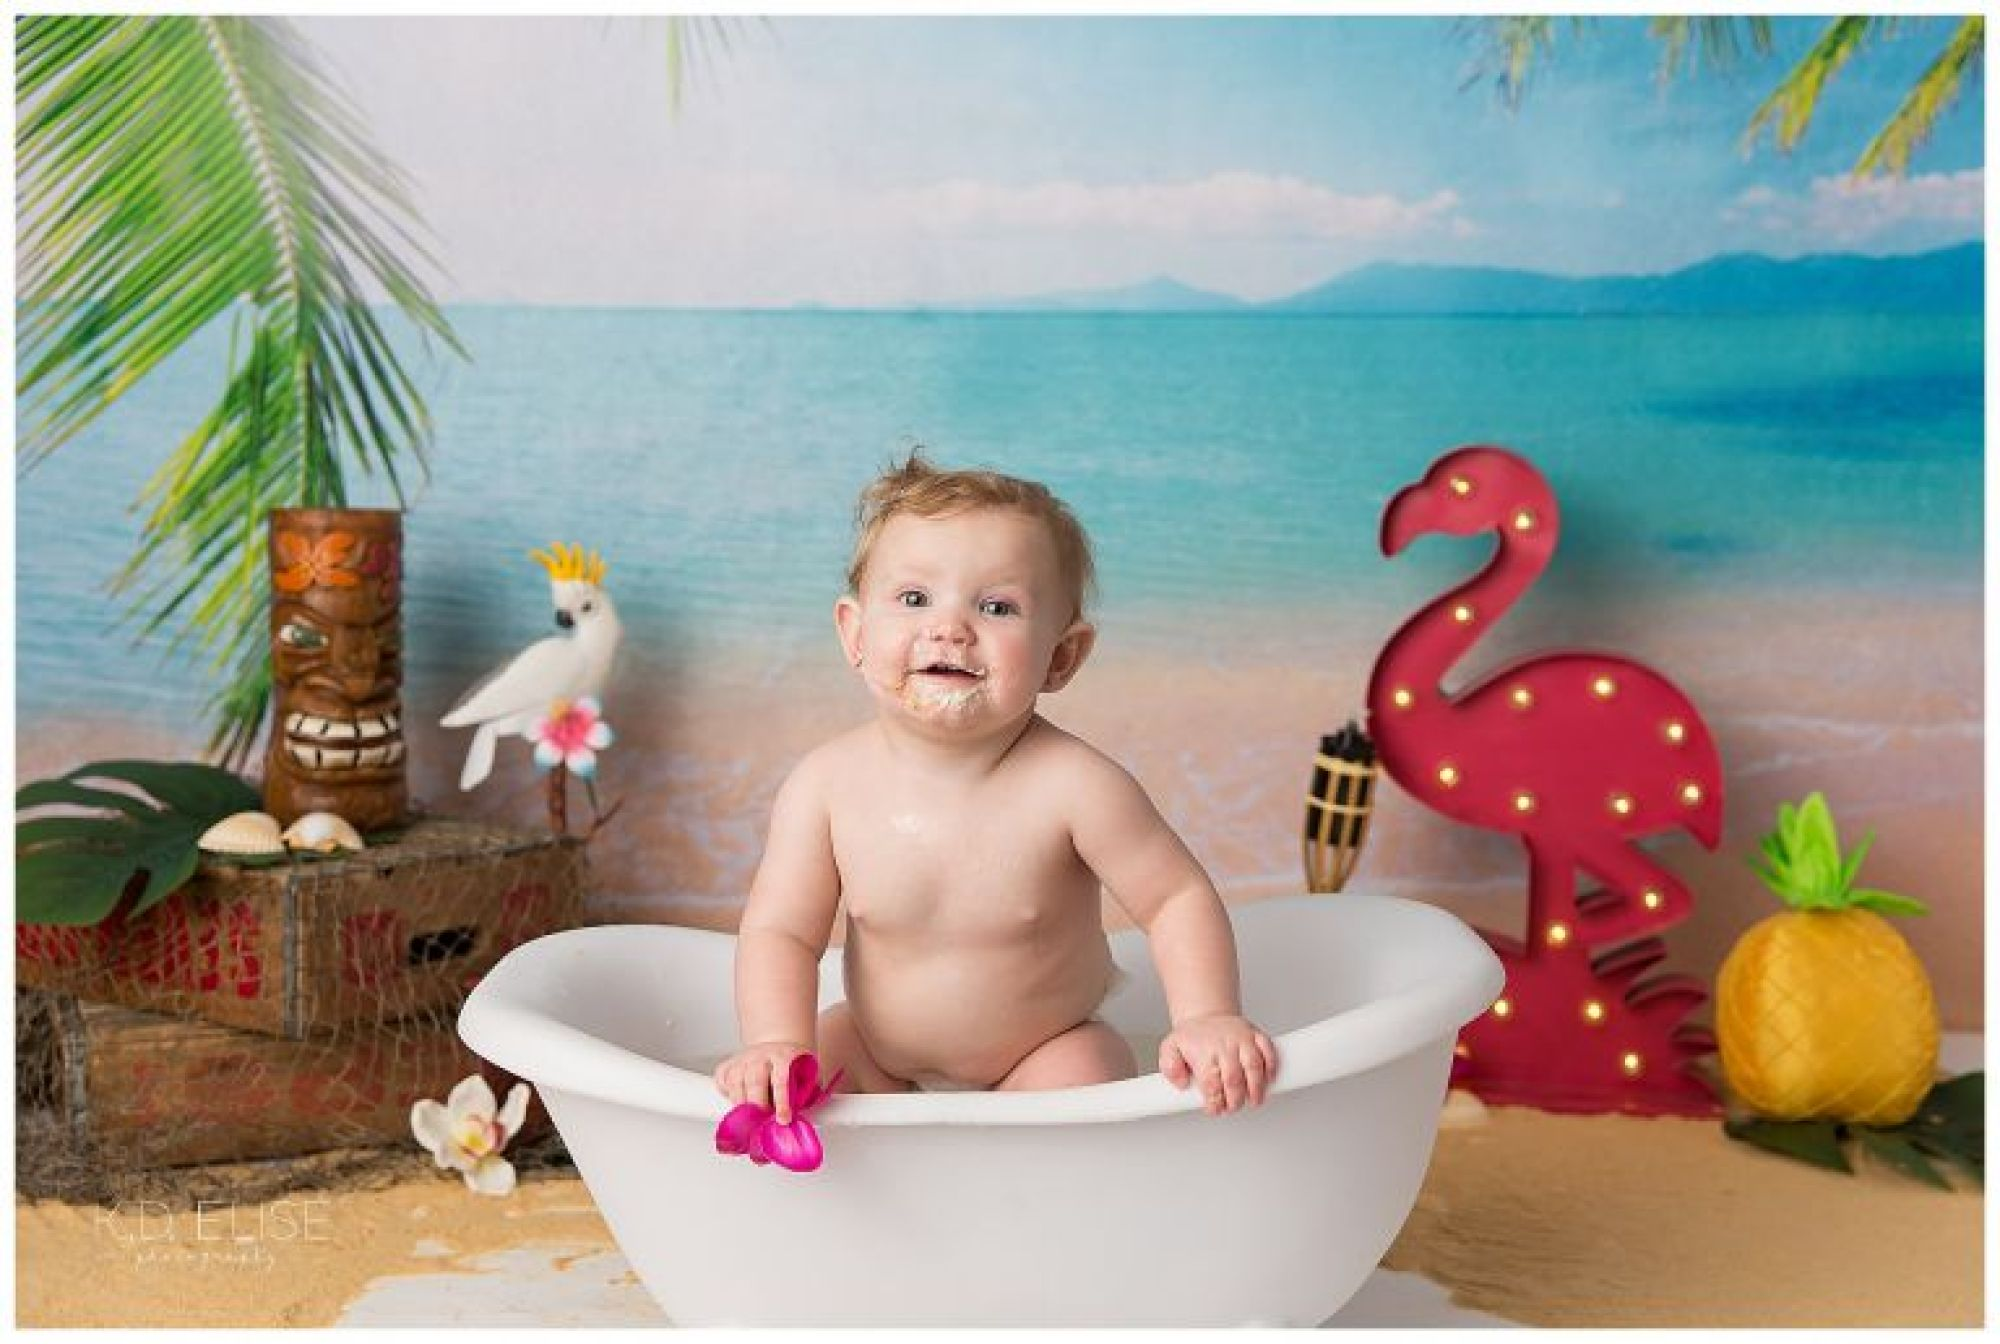 Baby girl in bathtub after luau themed cake smash from K.D. Elise Photography.